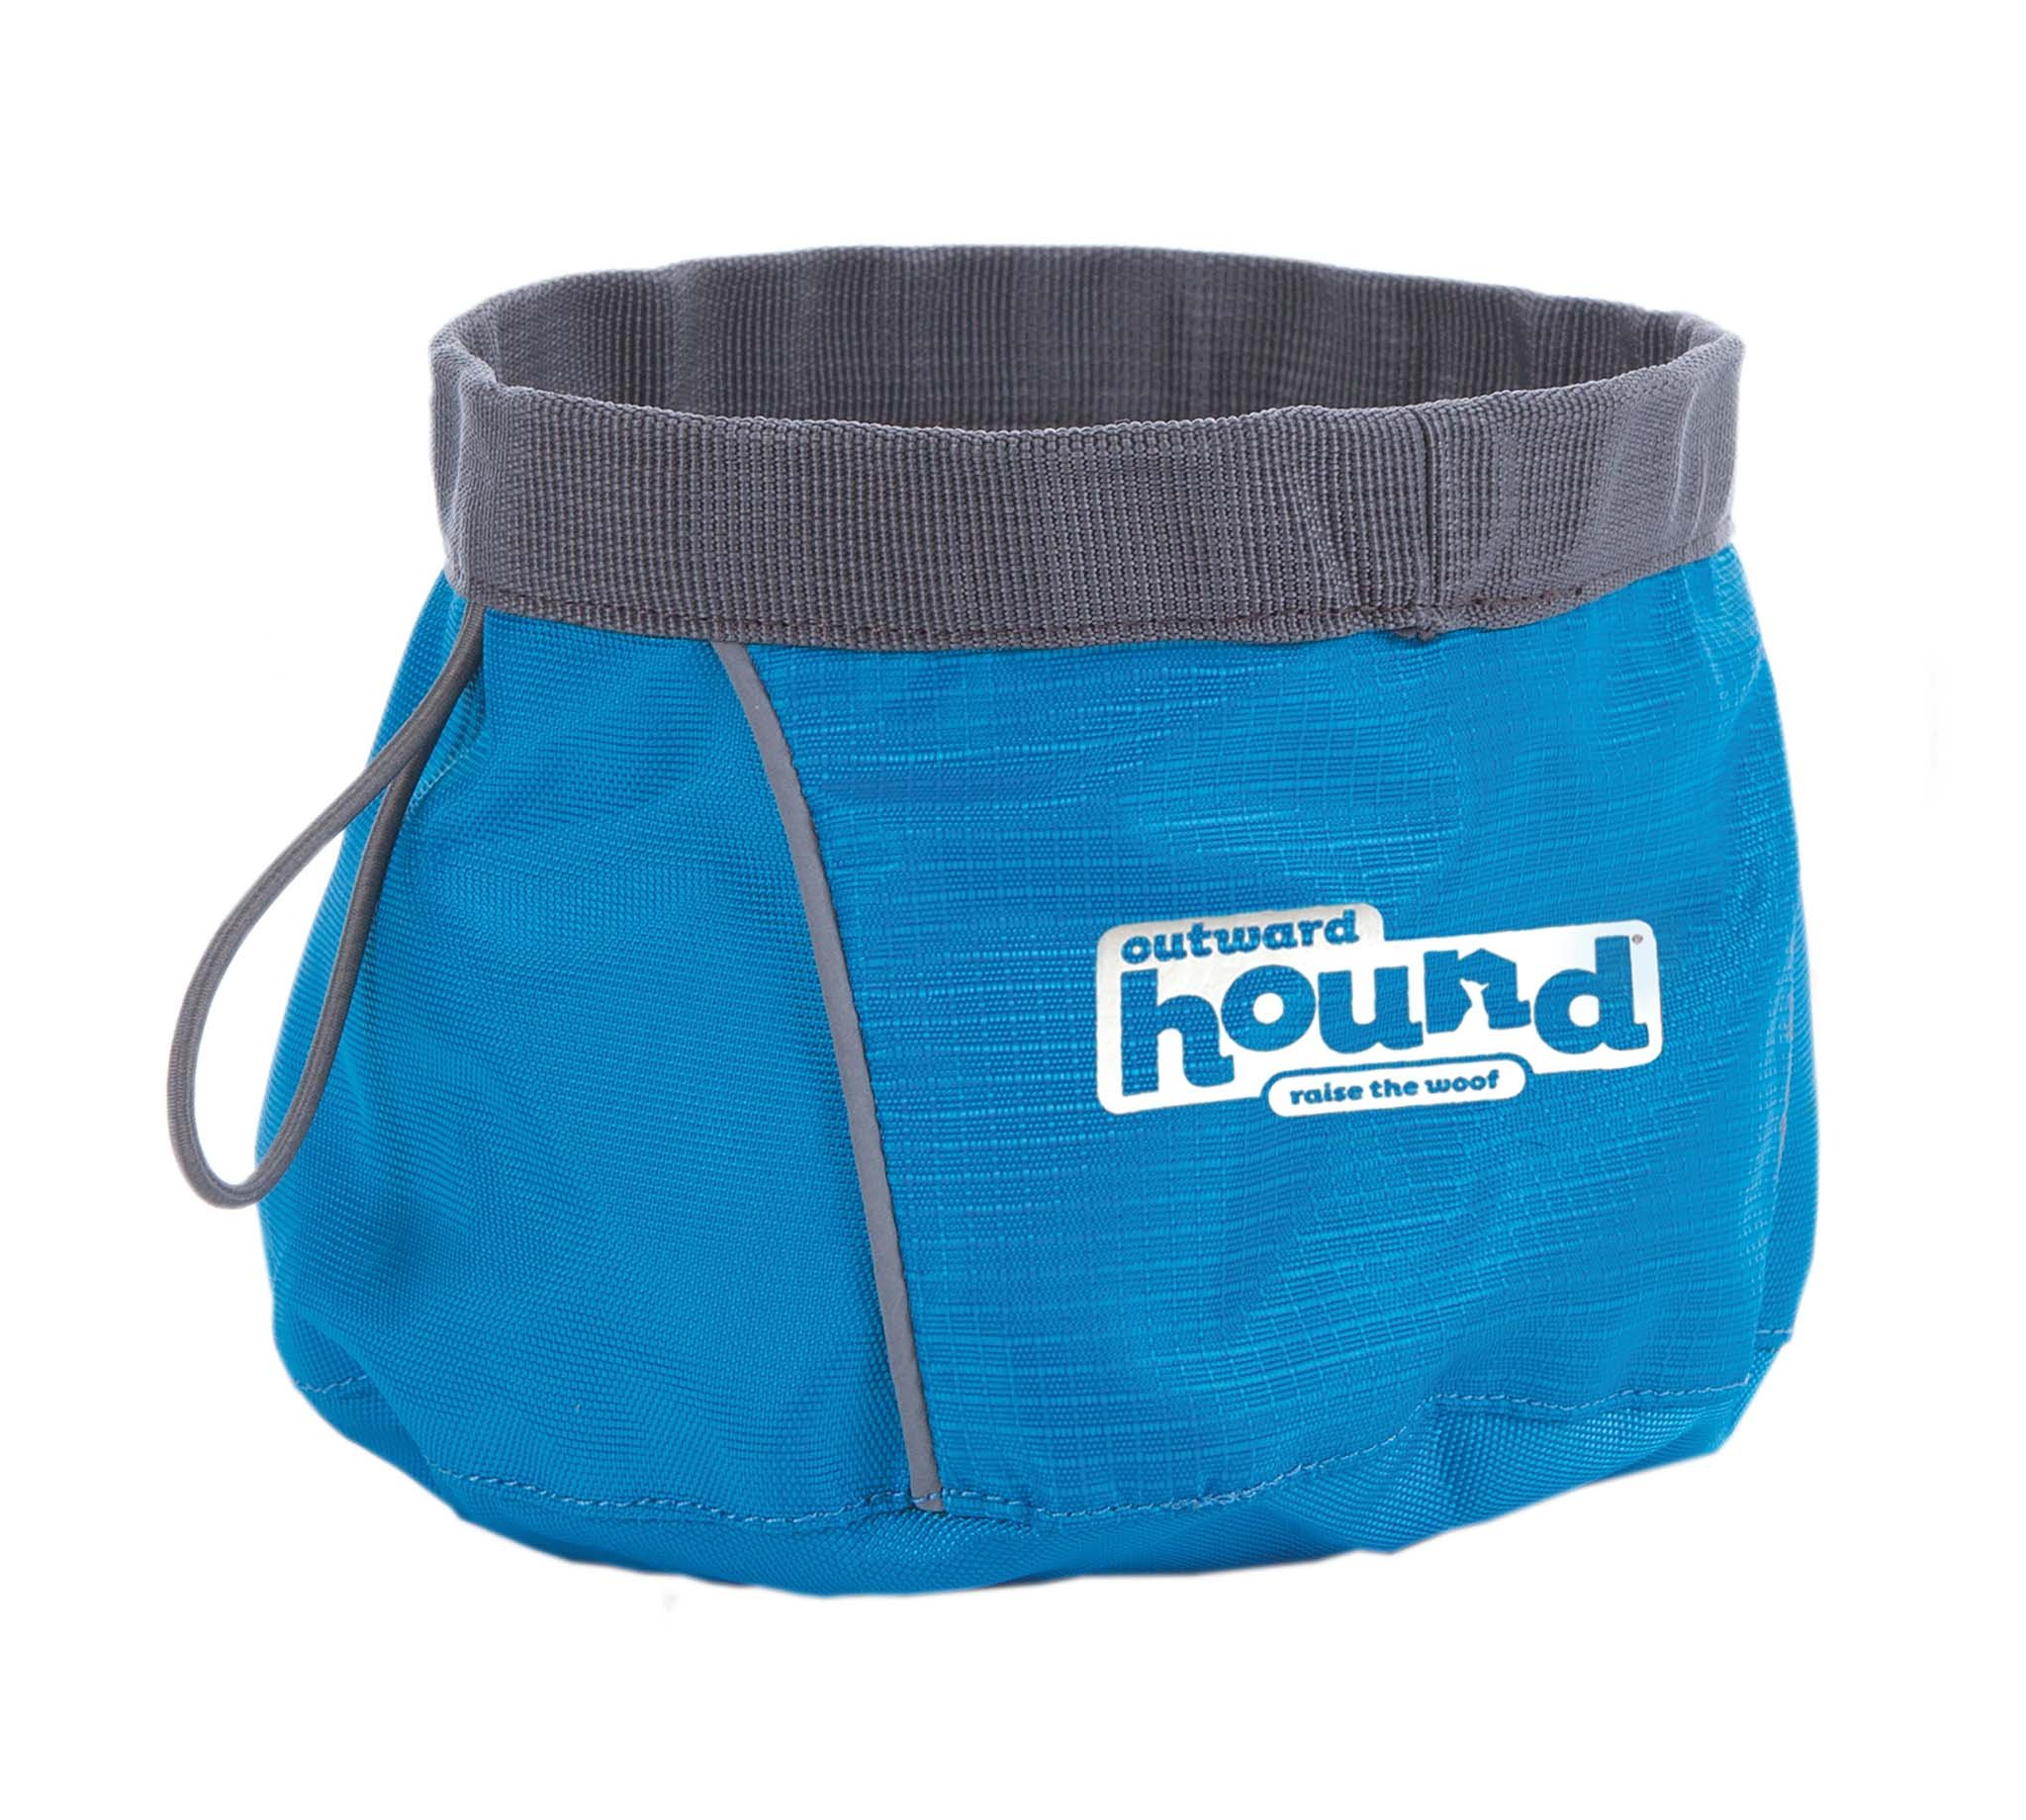 Outward Hound Port-A-Bowl Collapsible Travel Dog Food and Water Bowl by Outward Hound